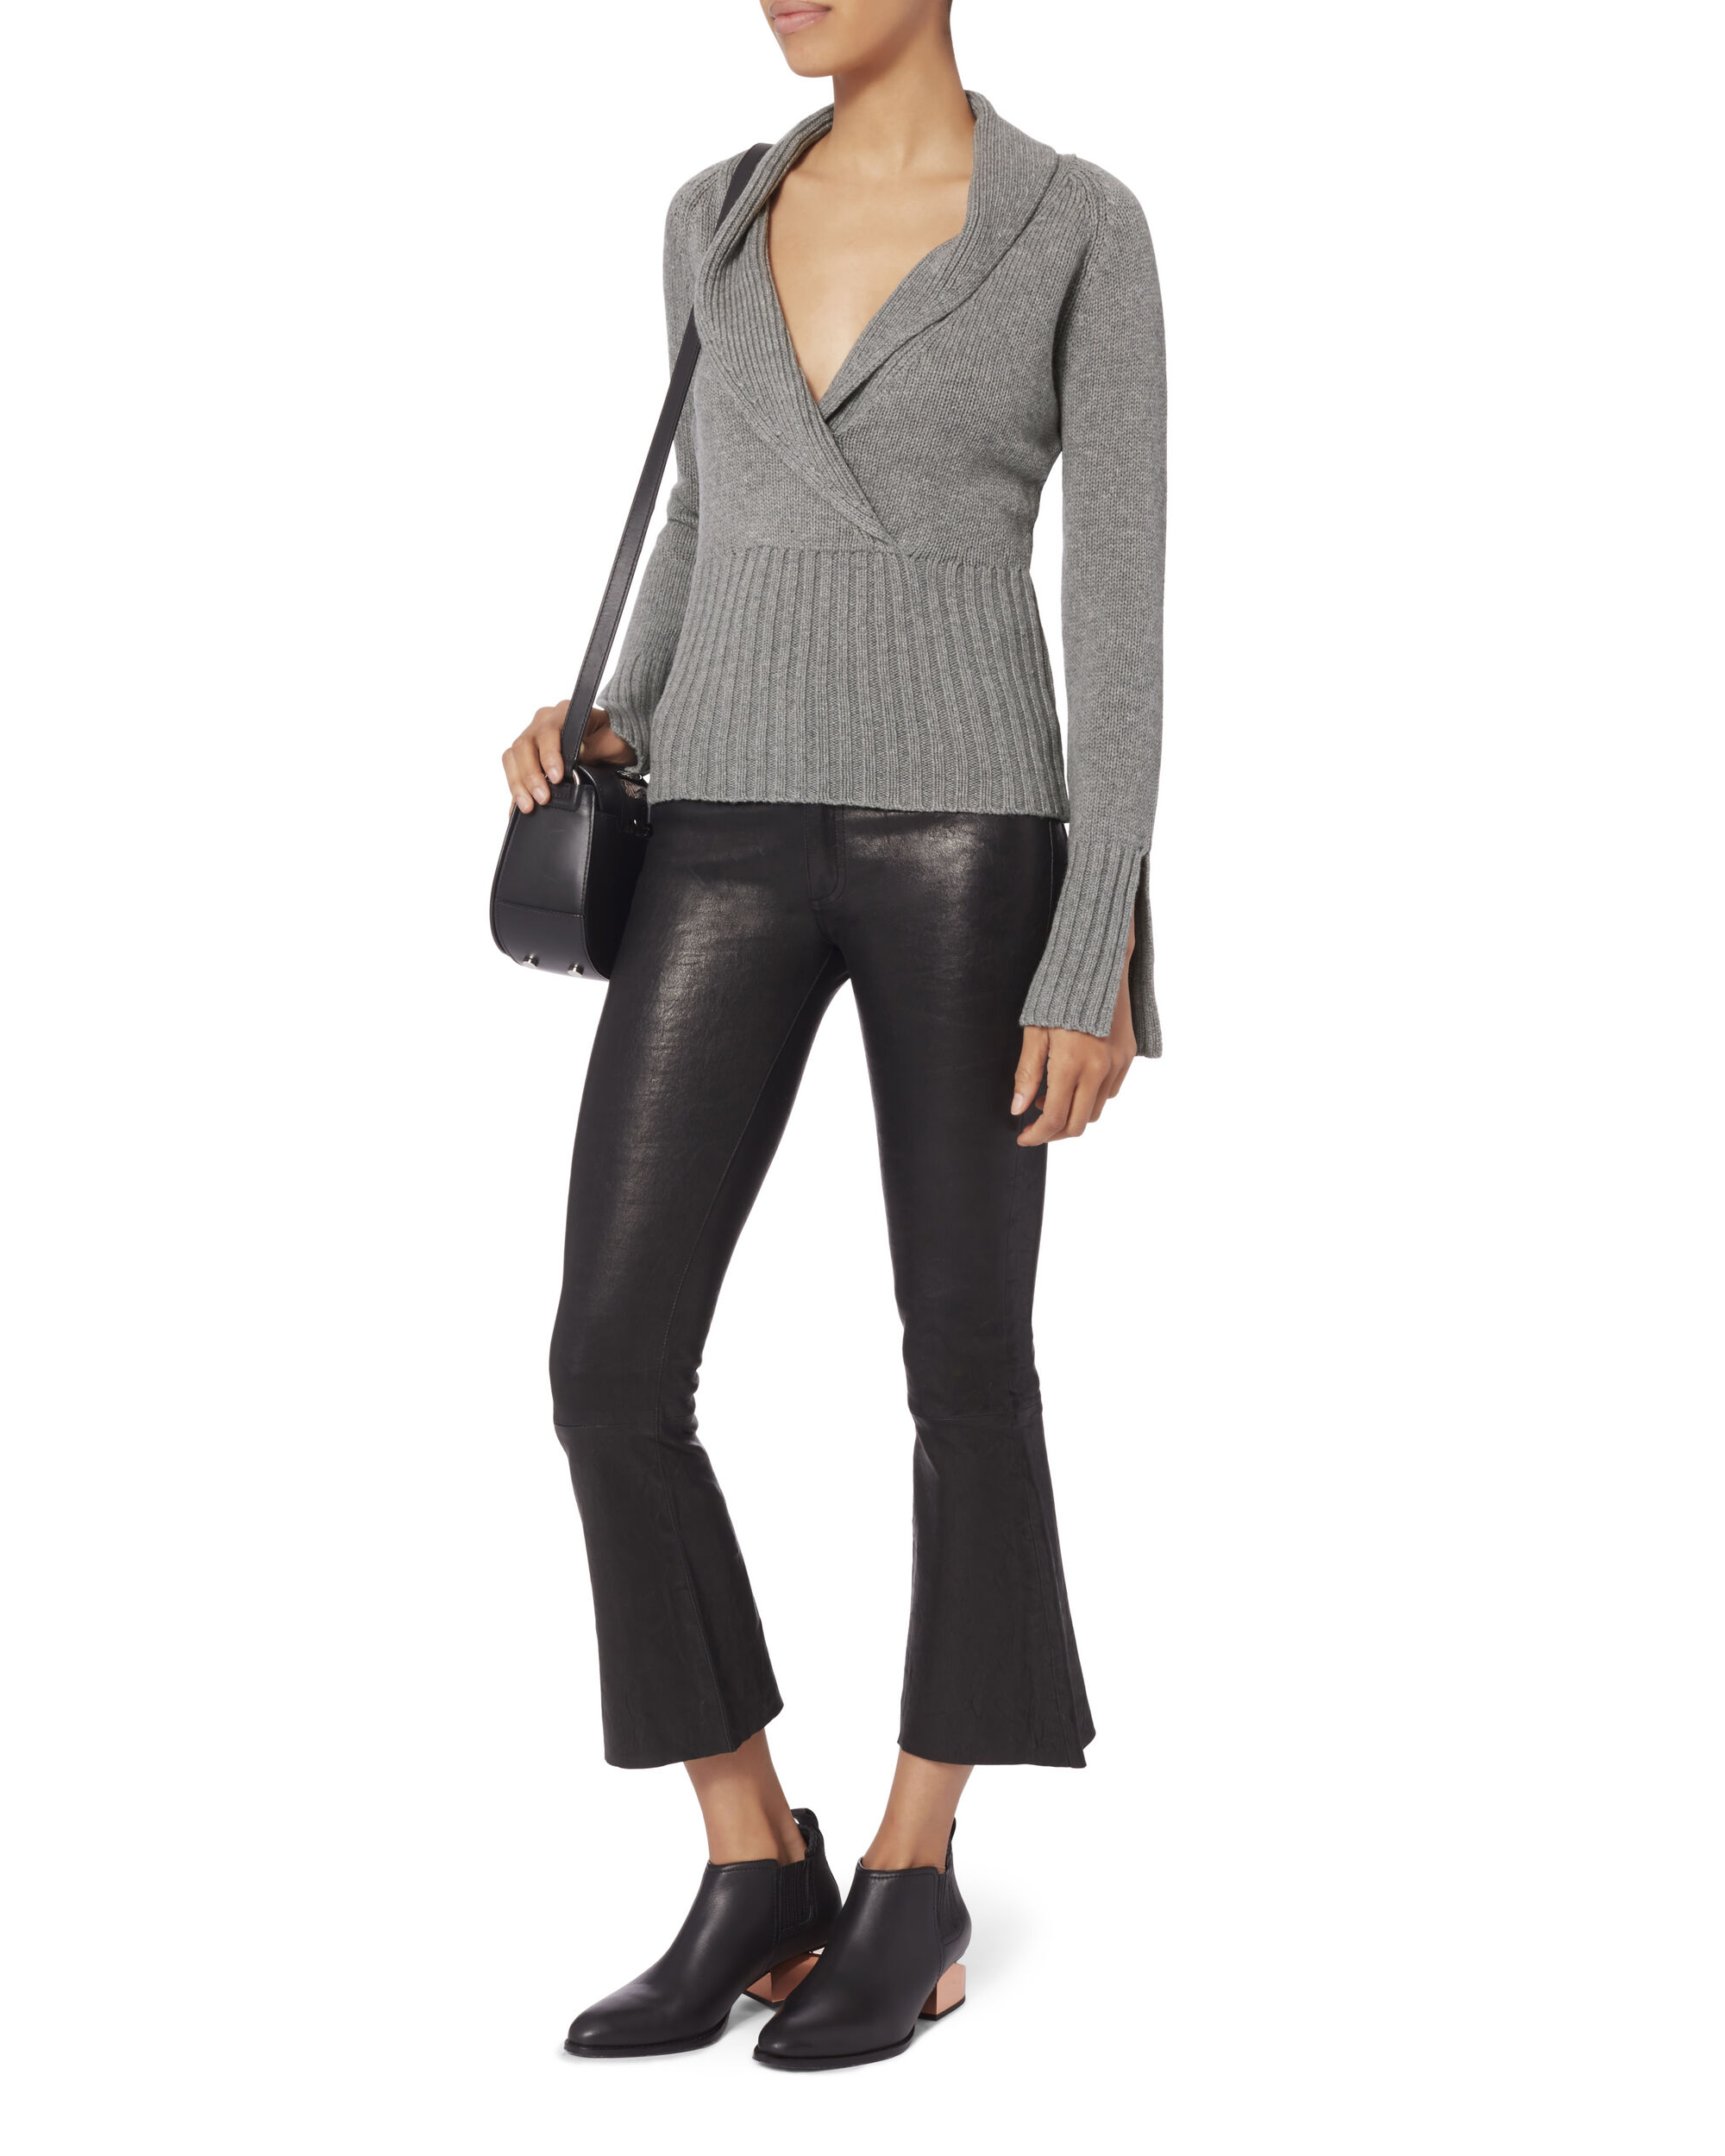 Amy Shawl Collar Sweater, GREY, hi-res